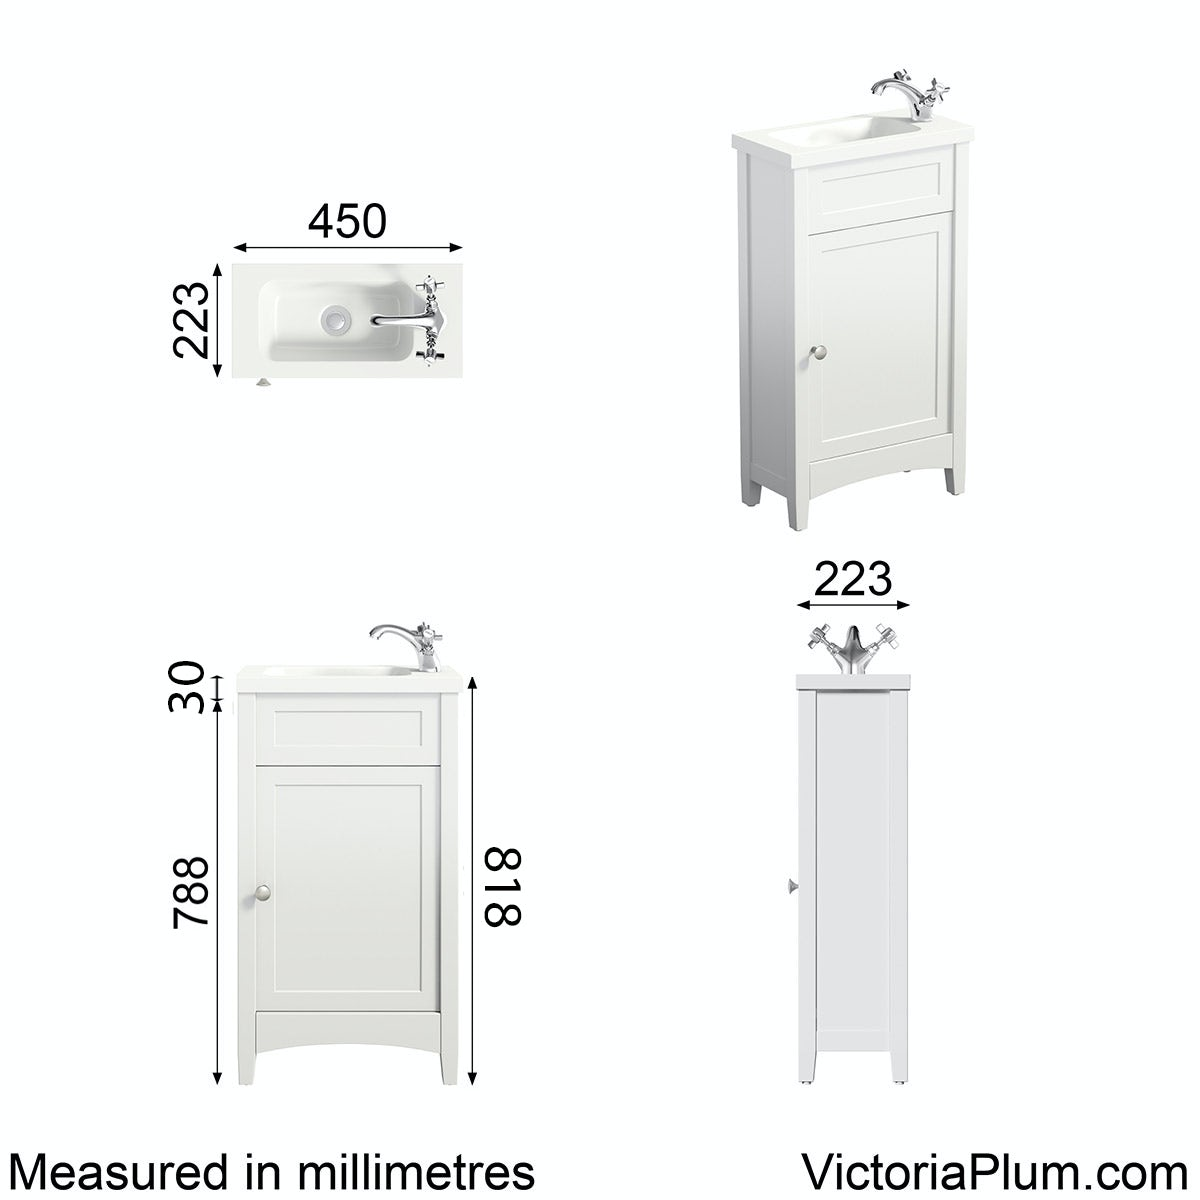 Dimensions for The Bath Co. Camberley white cloakroom vanity with resin basin